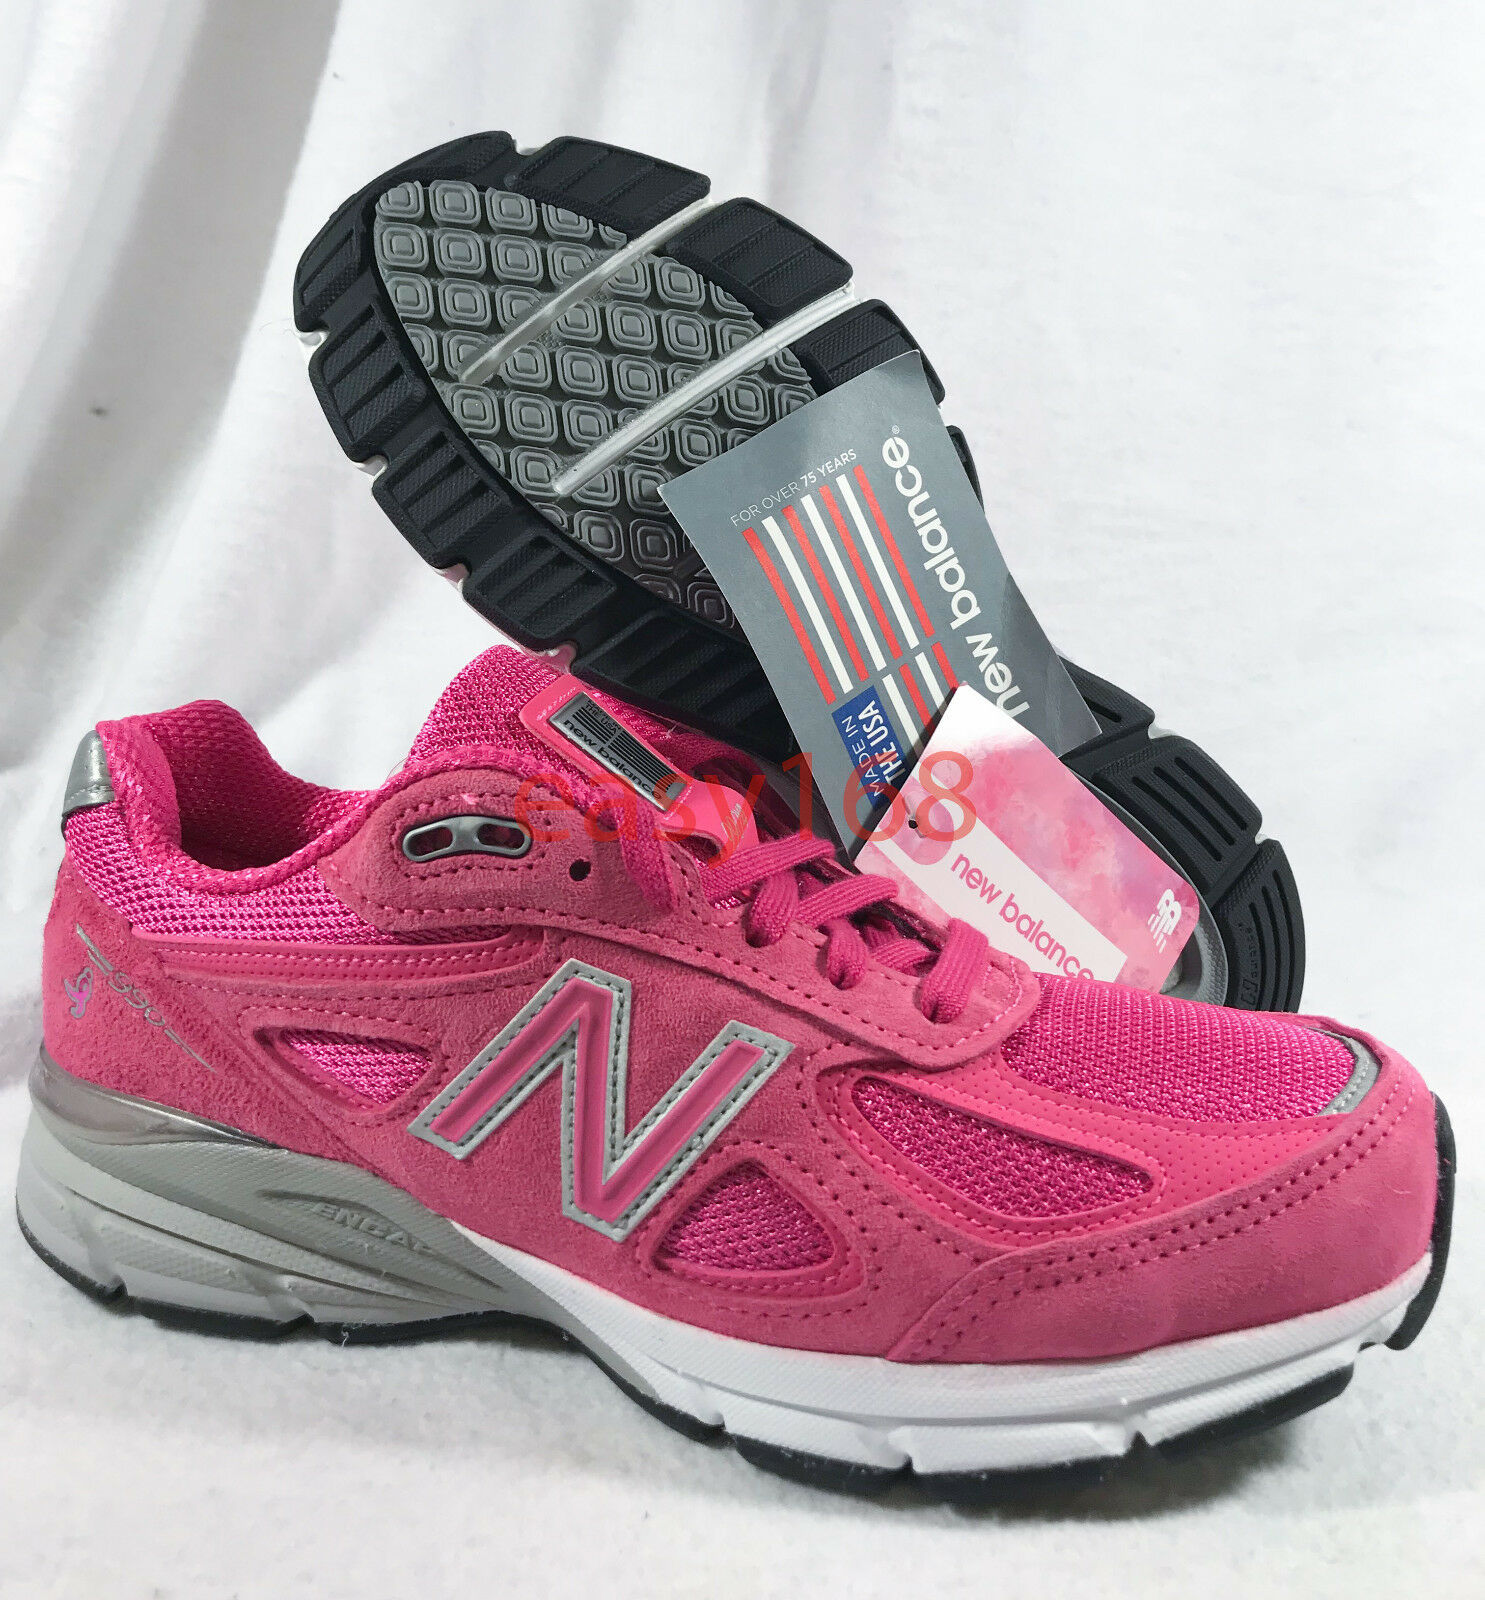 New New Balance 990 V4 Sz 7.5 WMNS W990KM4 NB Classic Made in USA Suede Pink 38